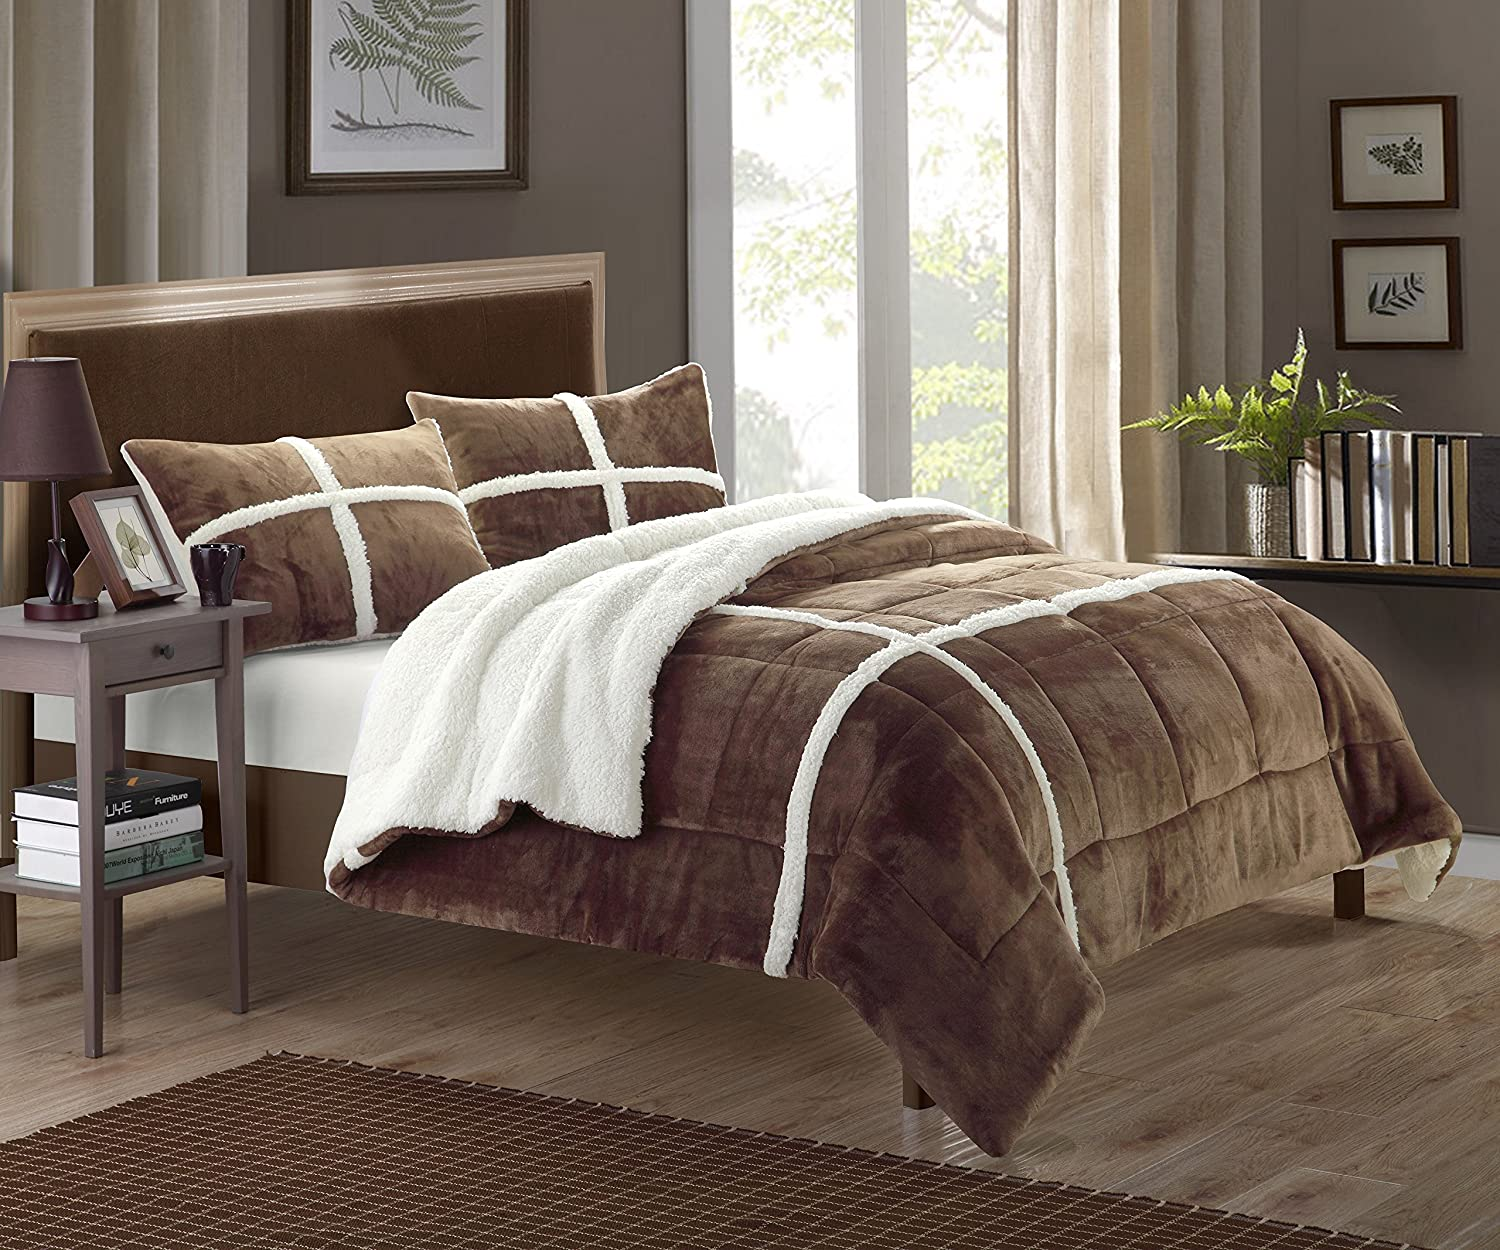 Chic Home 7 Minneapolis Mall Piece Chloe Sherpa Bed Set At the price of surprise with in Wh Comforter Bag